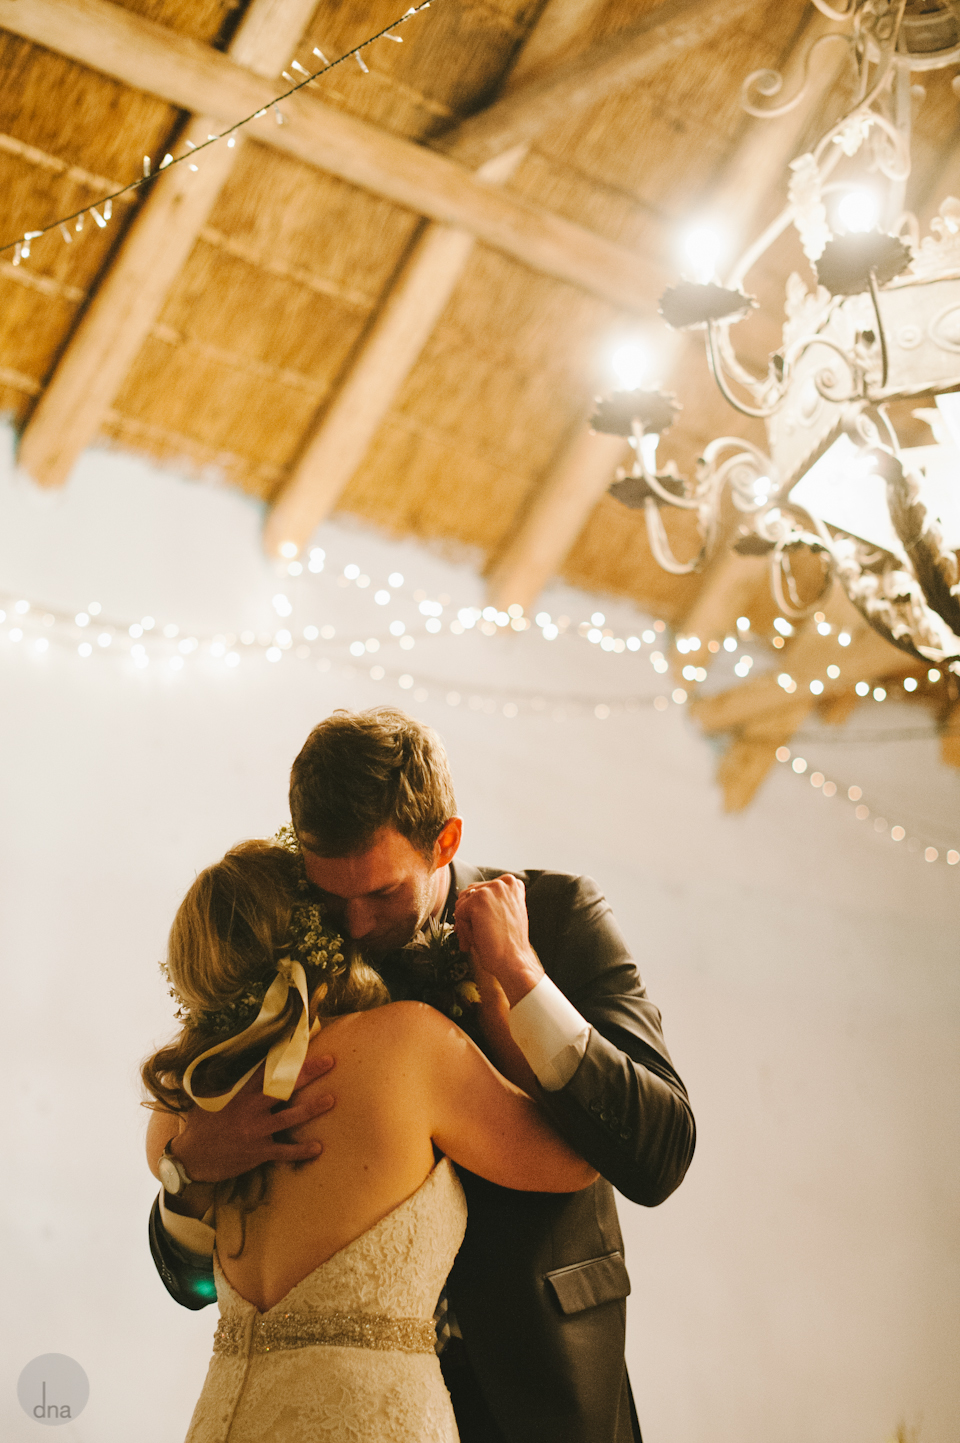 Amy and Marnus wedding Hawksmore House Stellenbosch South Africa shot by dna photographers_-1141.jpg